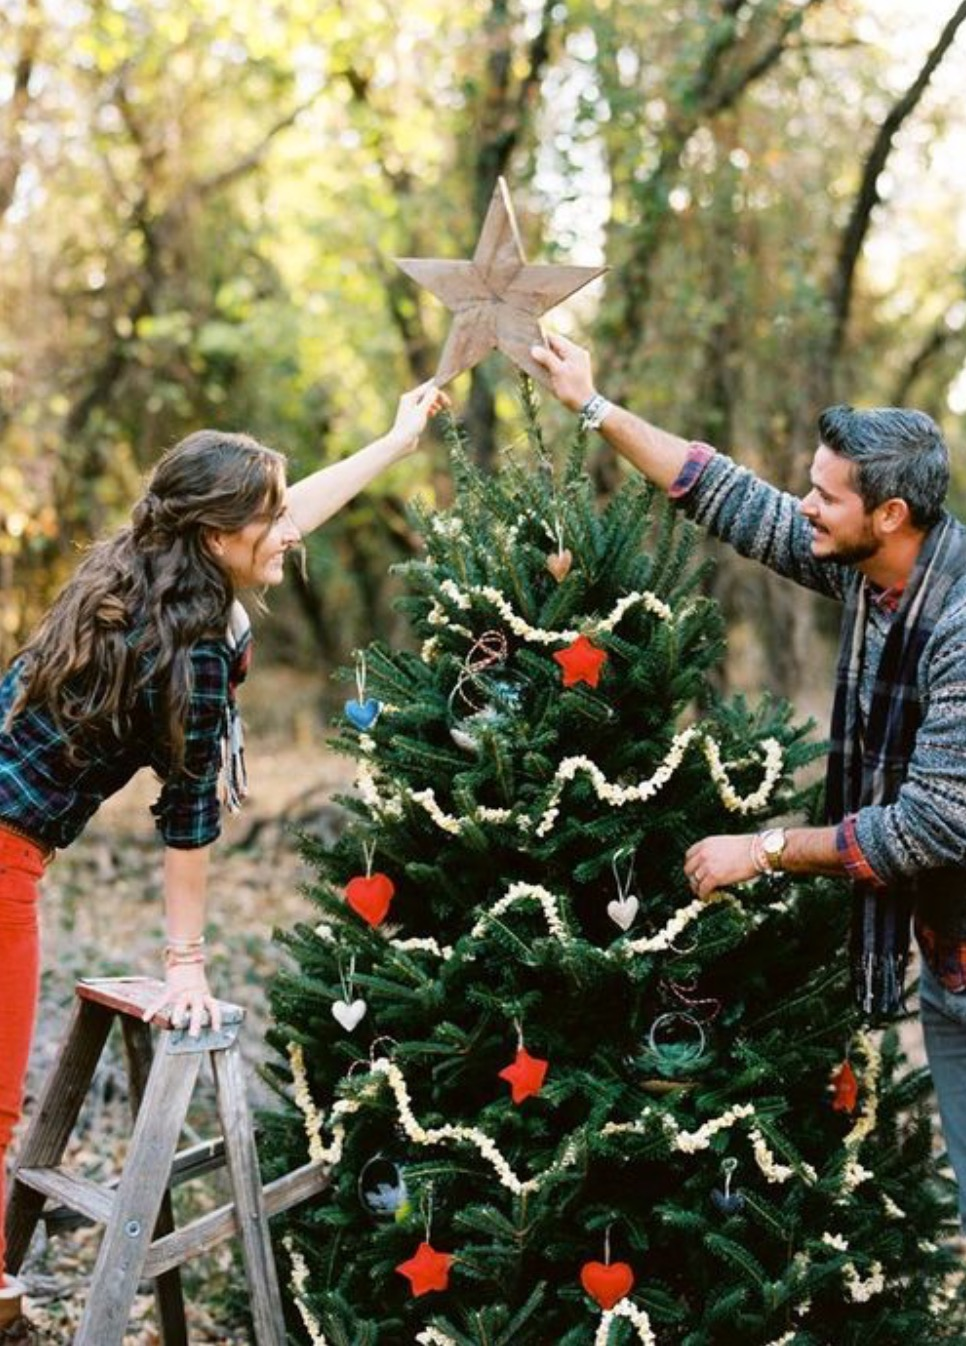 Christmastime Proposal while Christmas Tree Trimming